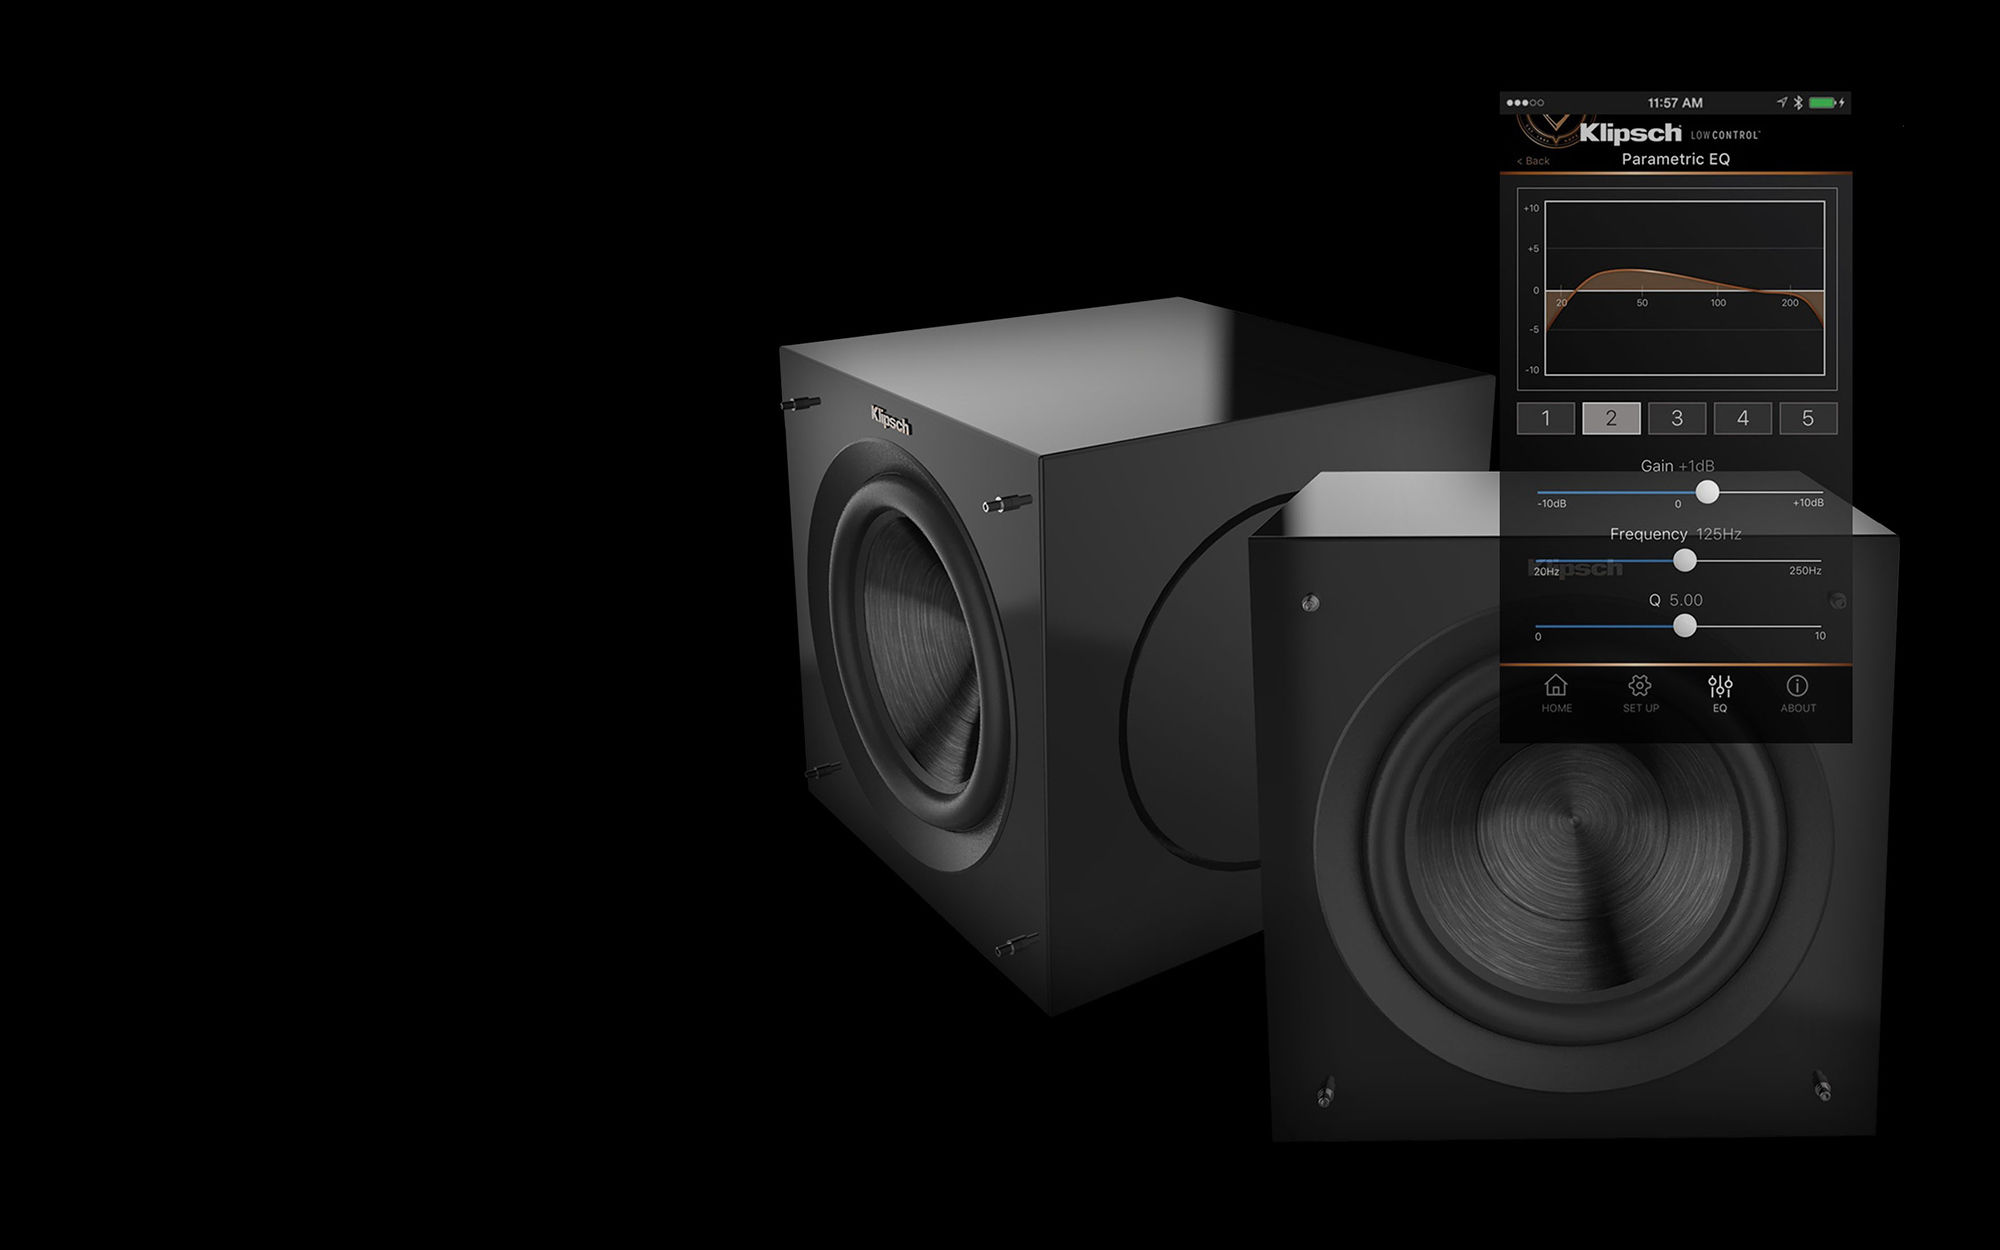 Klipsch subwoofers with control app